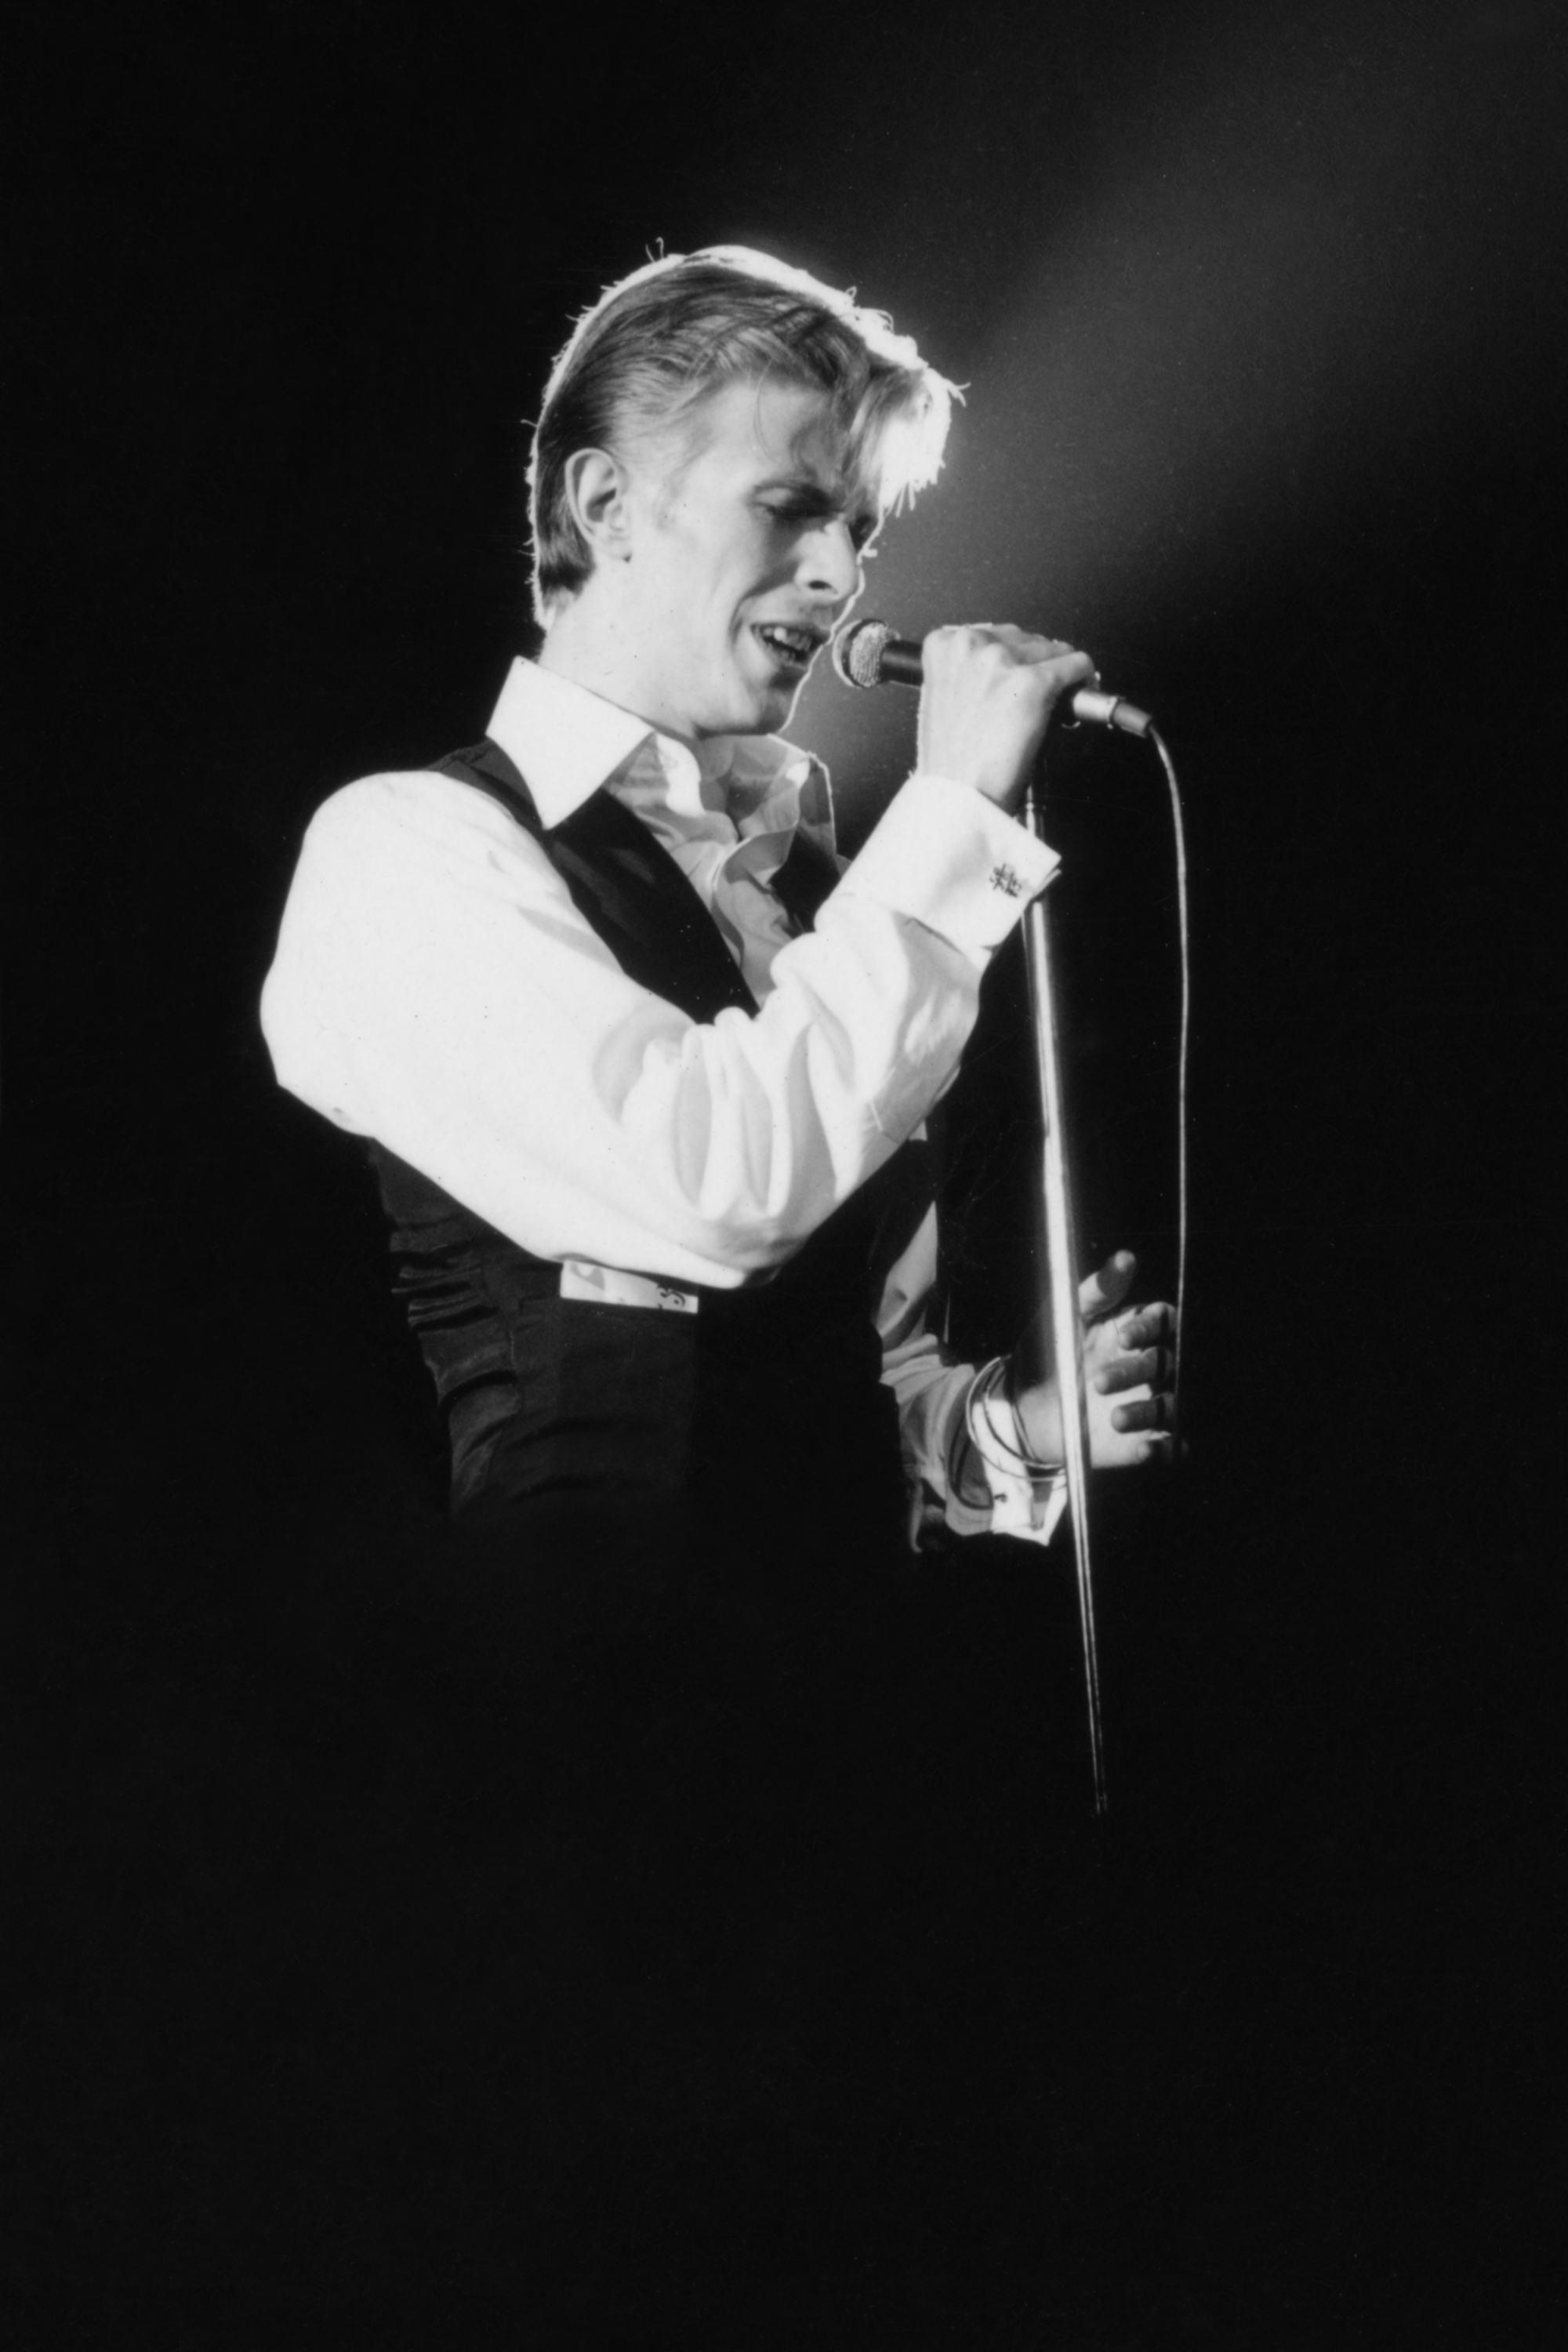 David Bowie On Stage Spotlight By Terry O'Neill